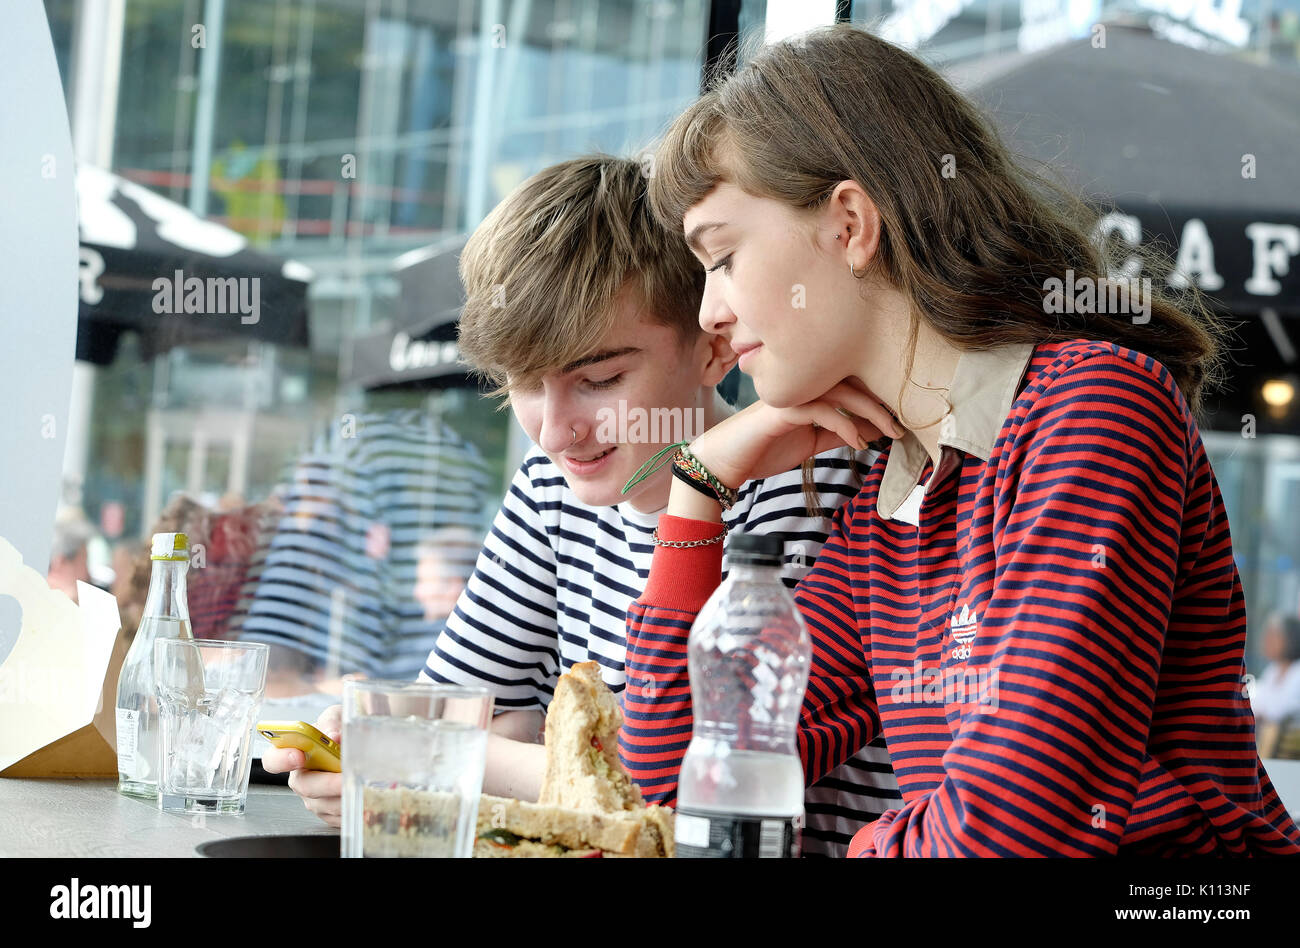 Young woman in cafe Photo Stock